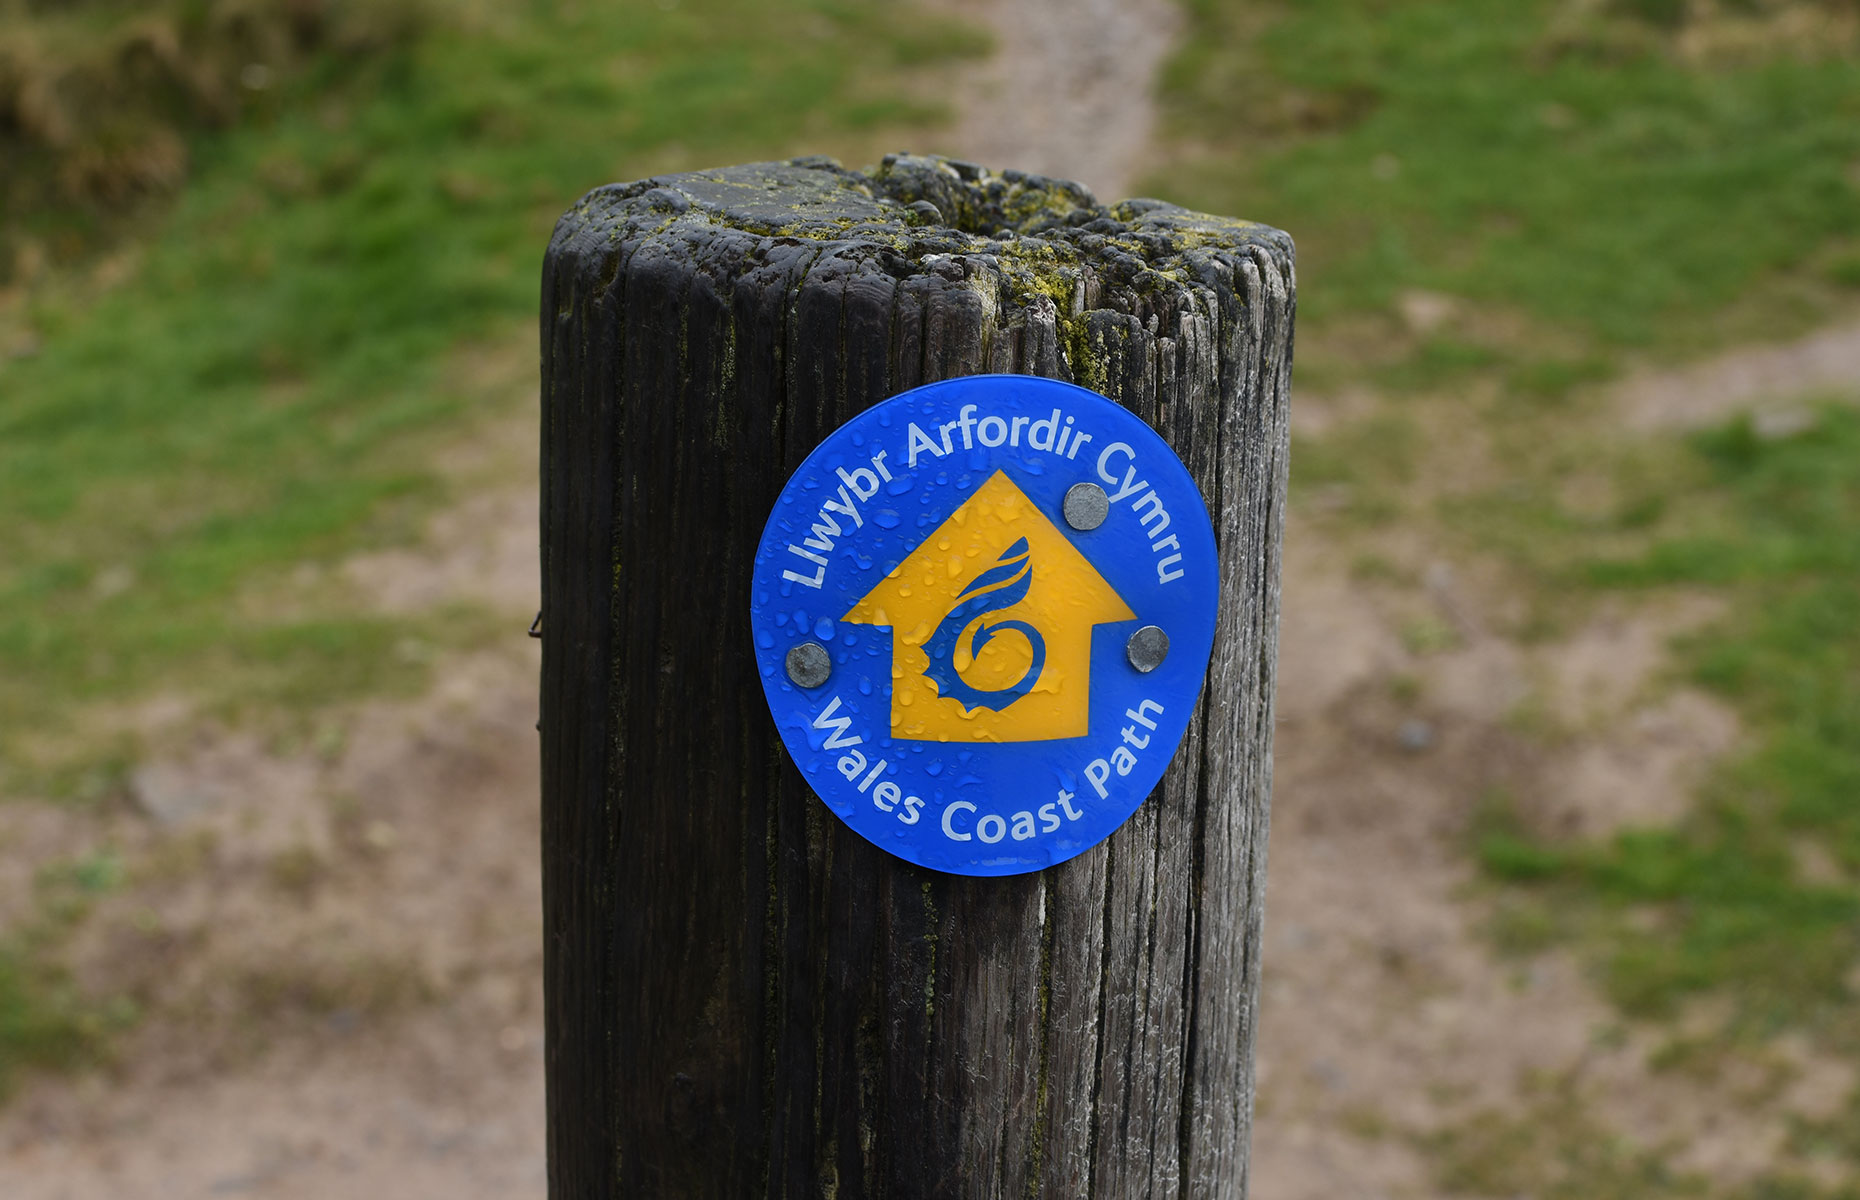 Waymarker on the Wales Coast Path